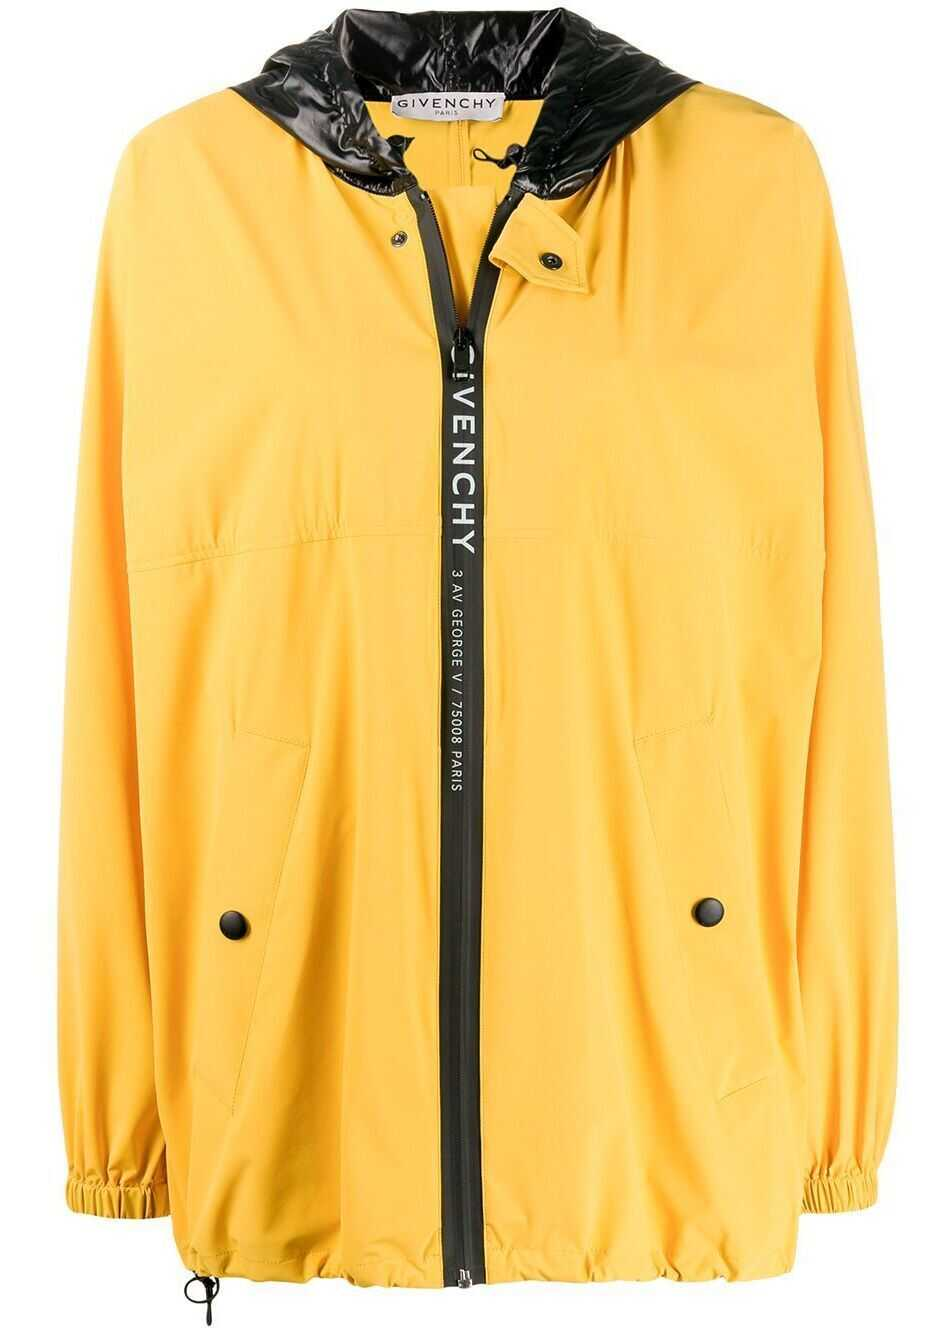 Givenchy Synthetic Fibers Outerwear Jacket YELLOW